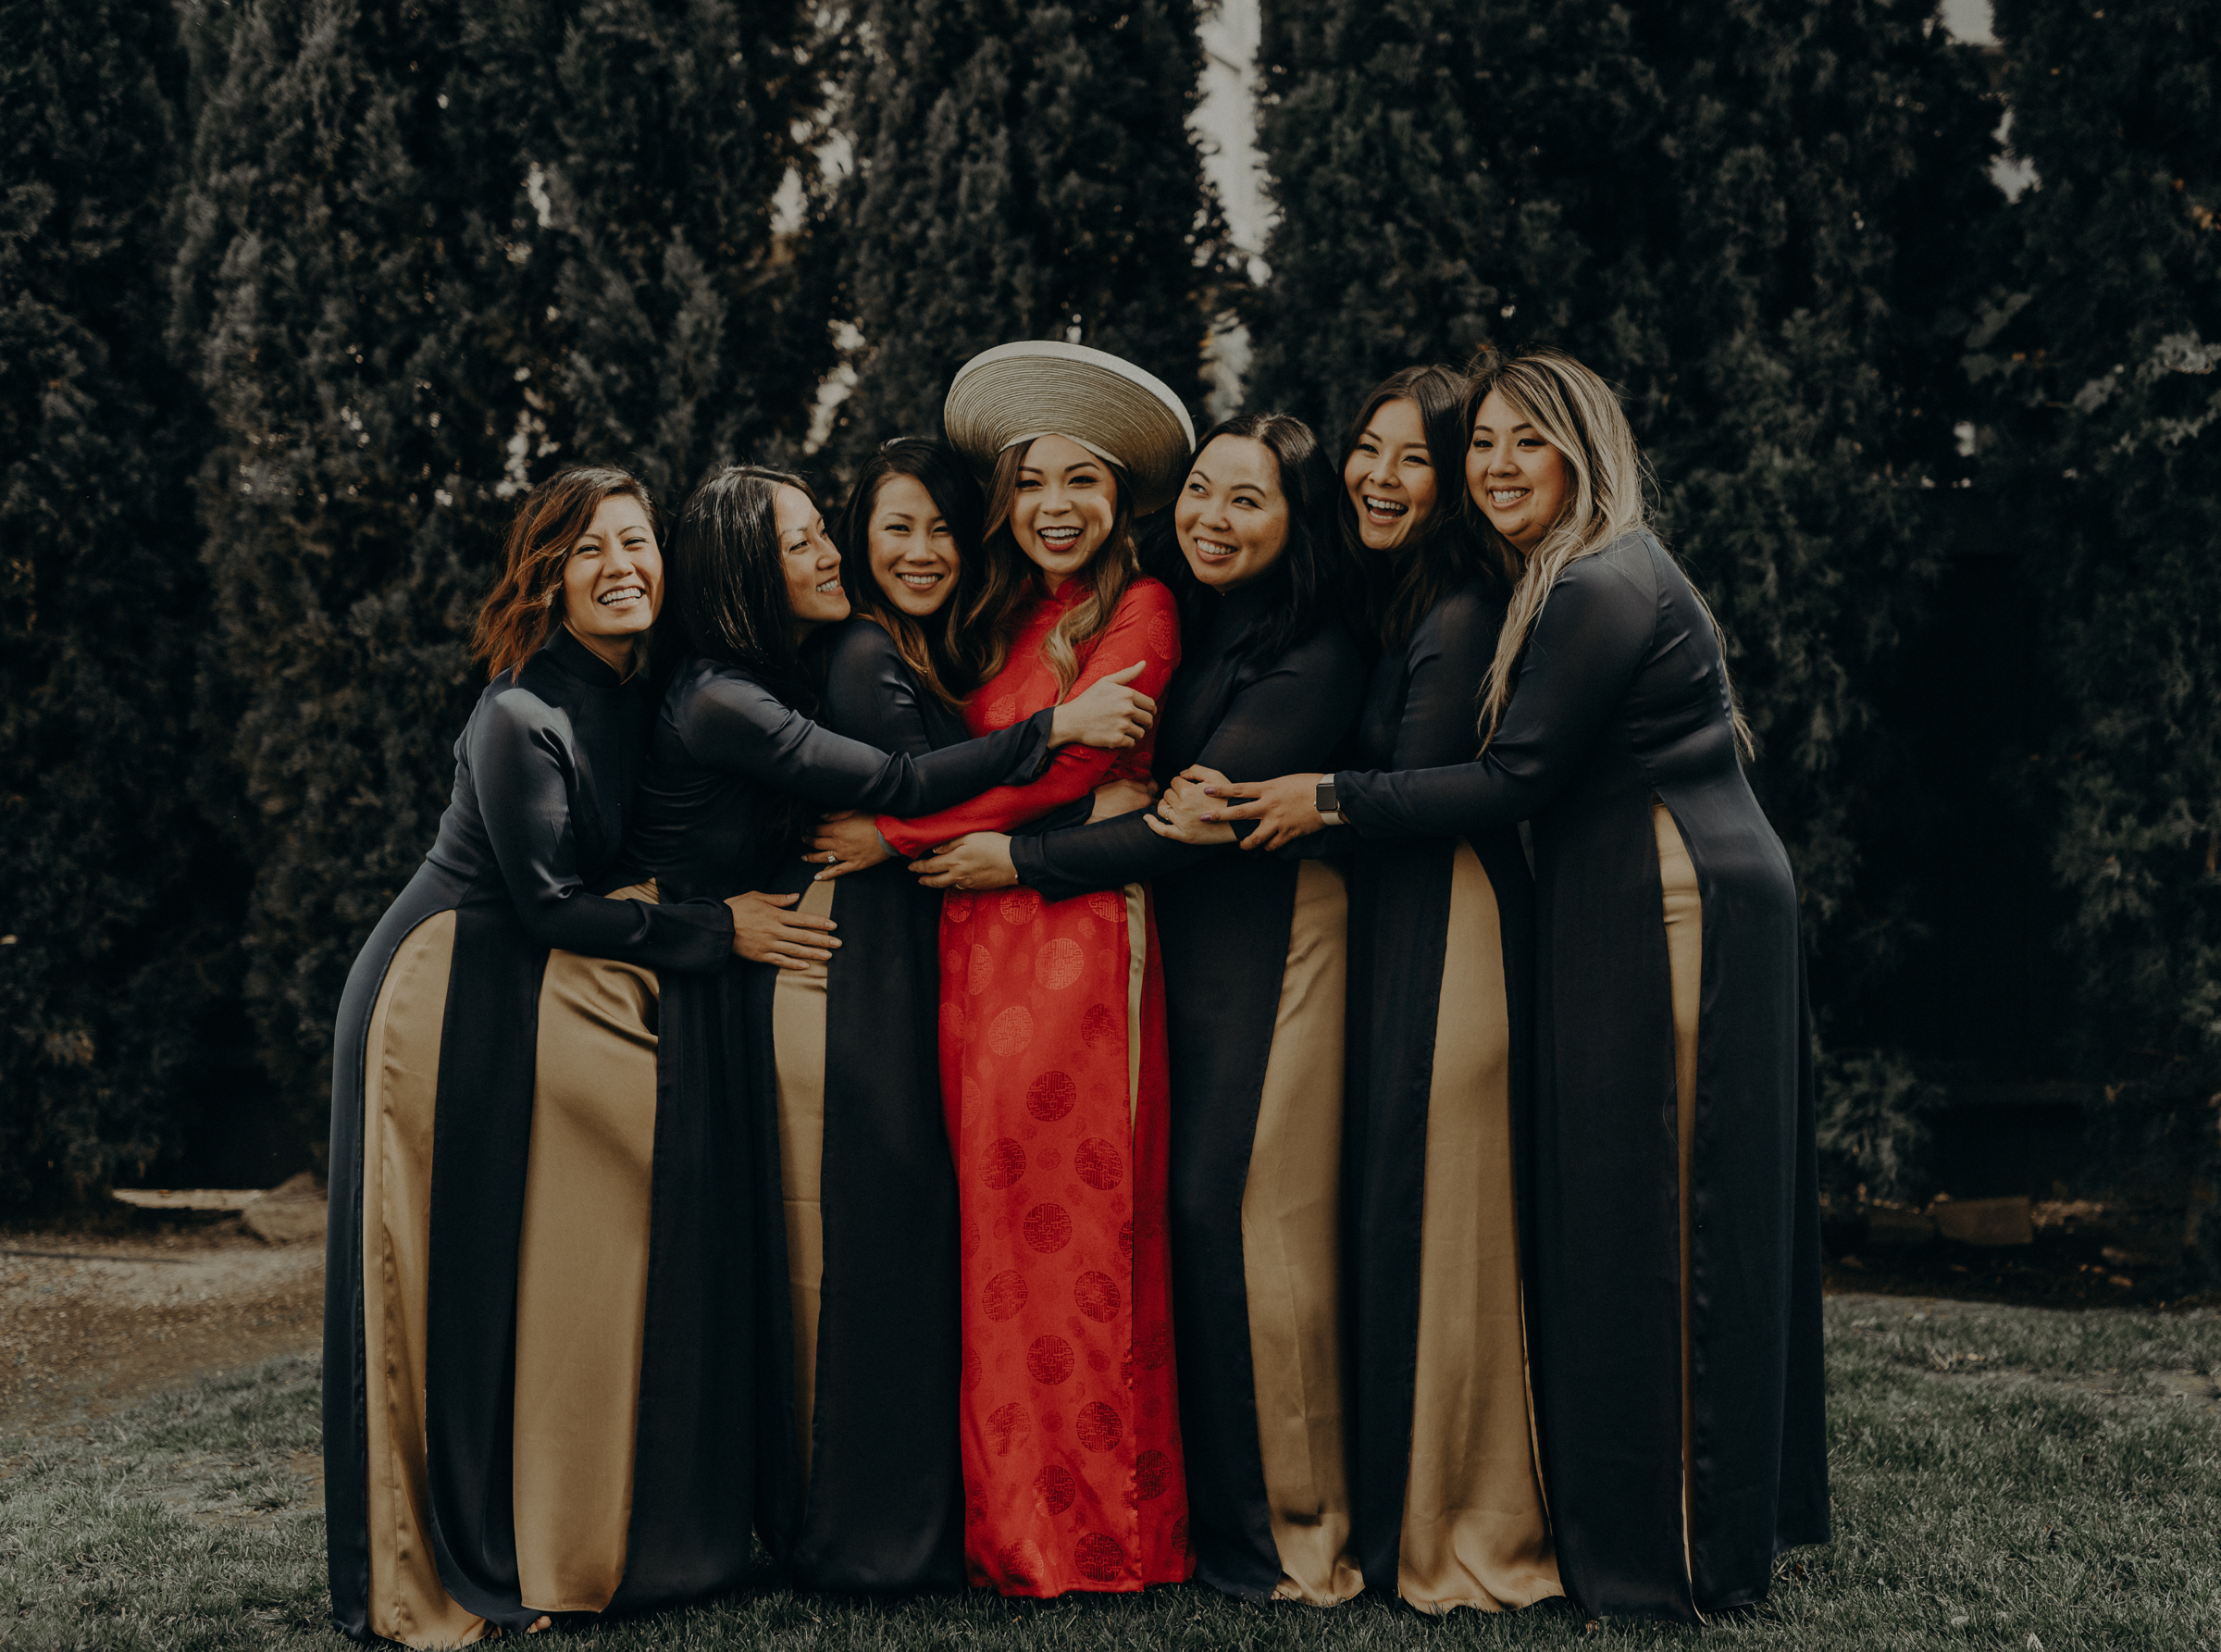 Los Angeles Wedding Photographer - IsaiahAndTaylor.com - The Ebell of Long Beach Wedding - Traditional Vietnamese tea ceremony-065.jpg